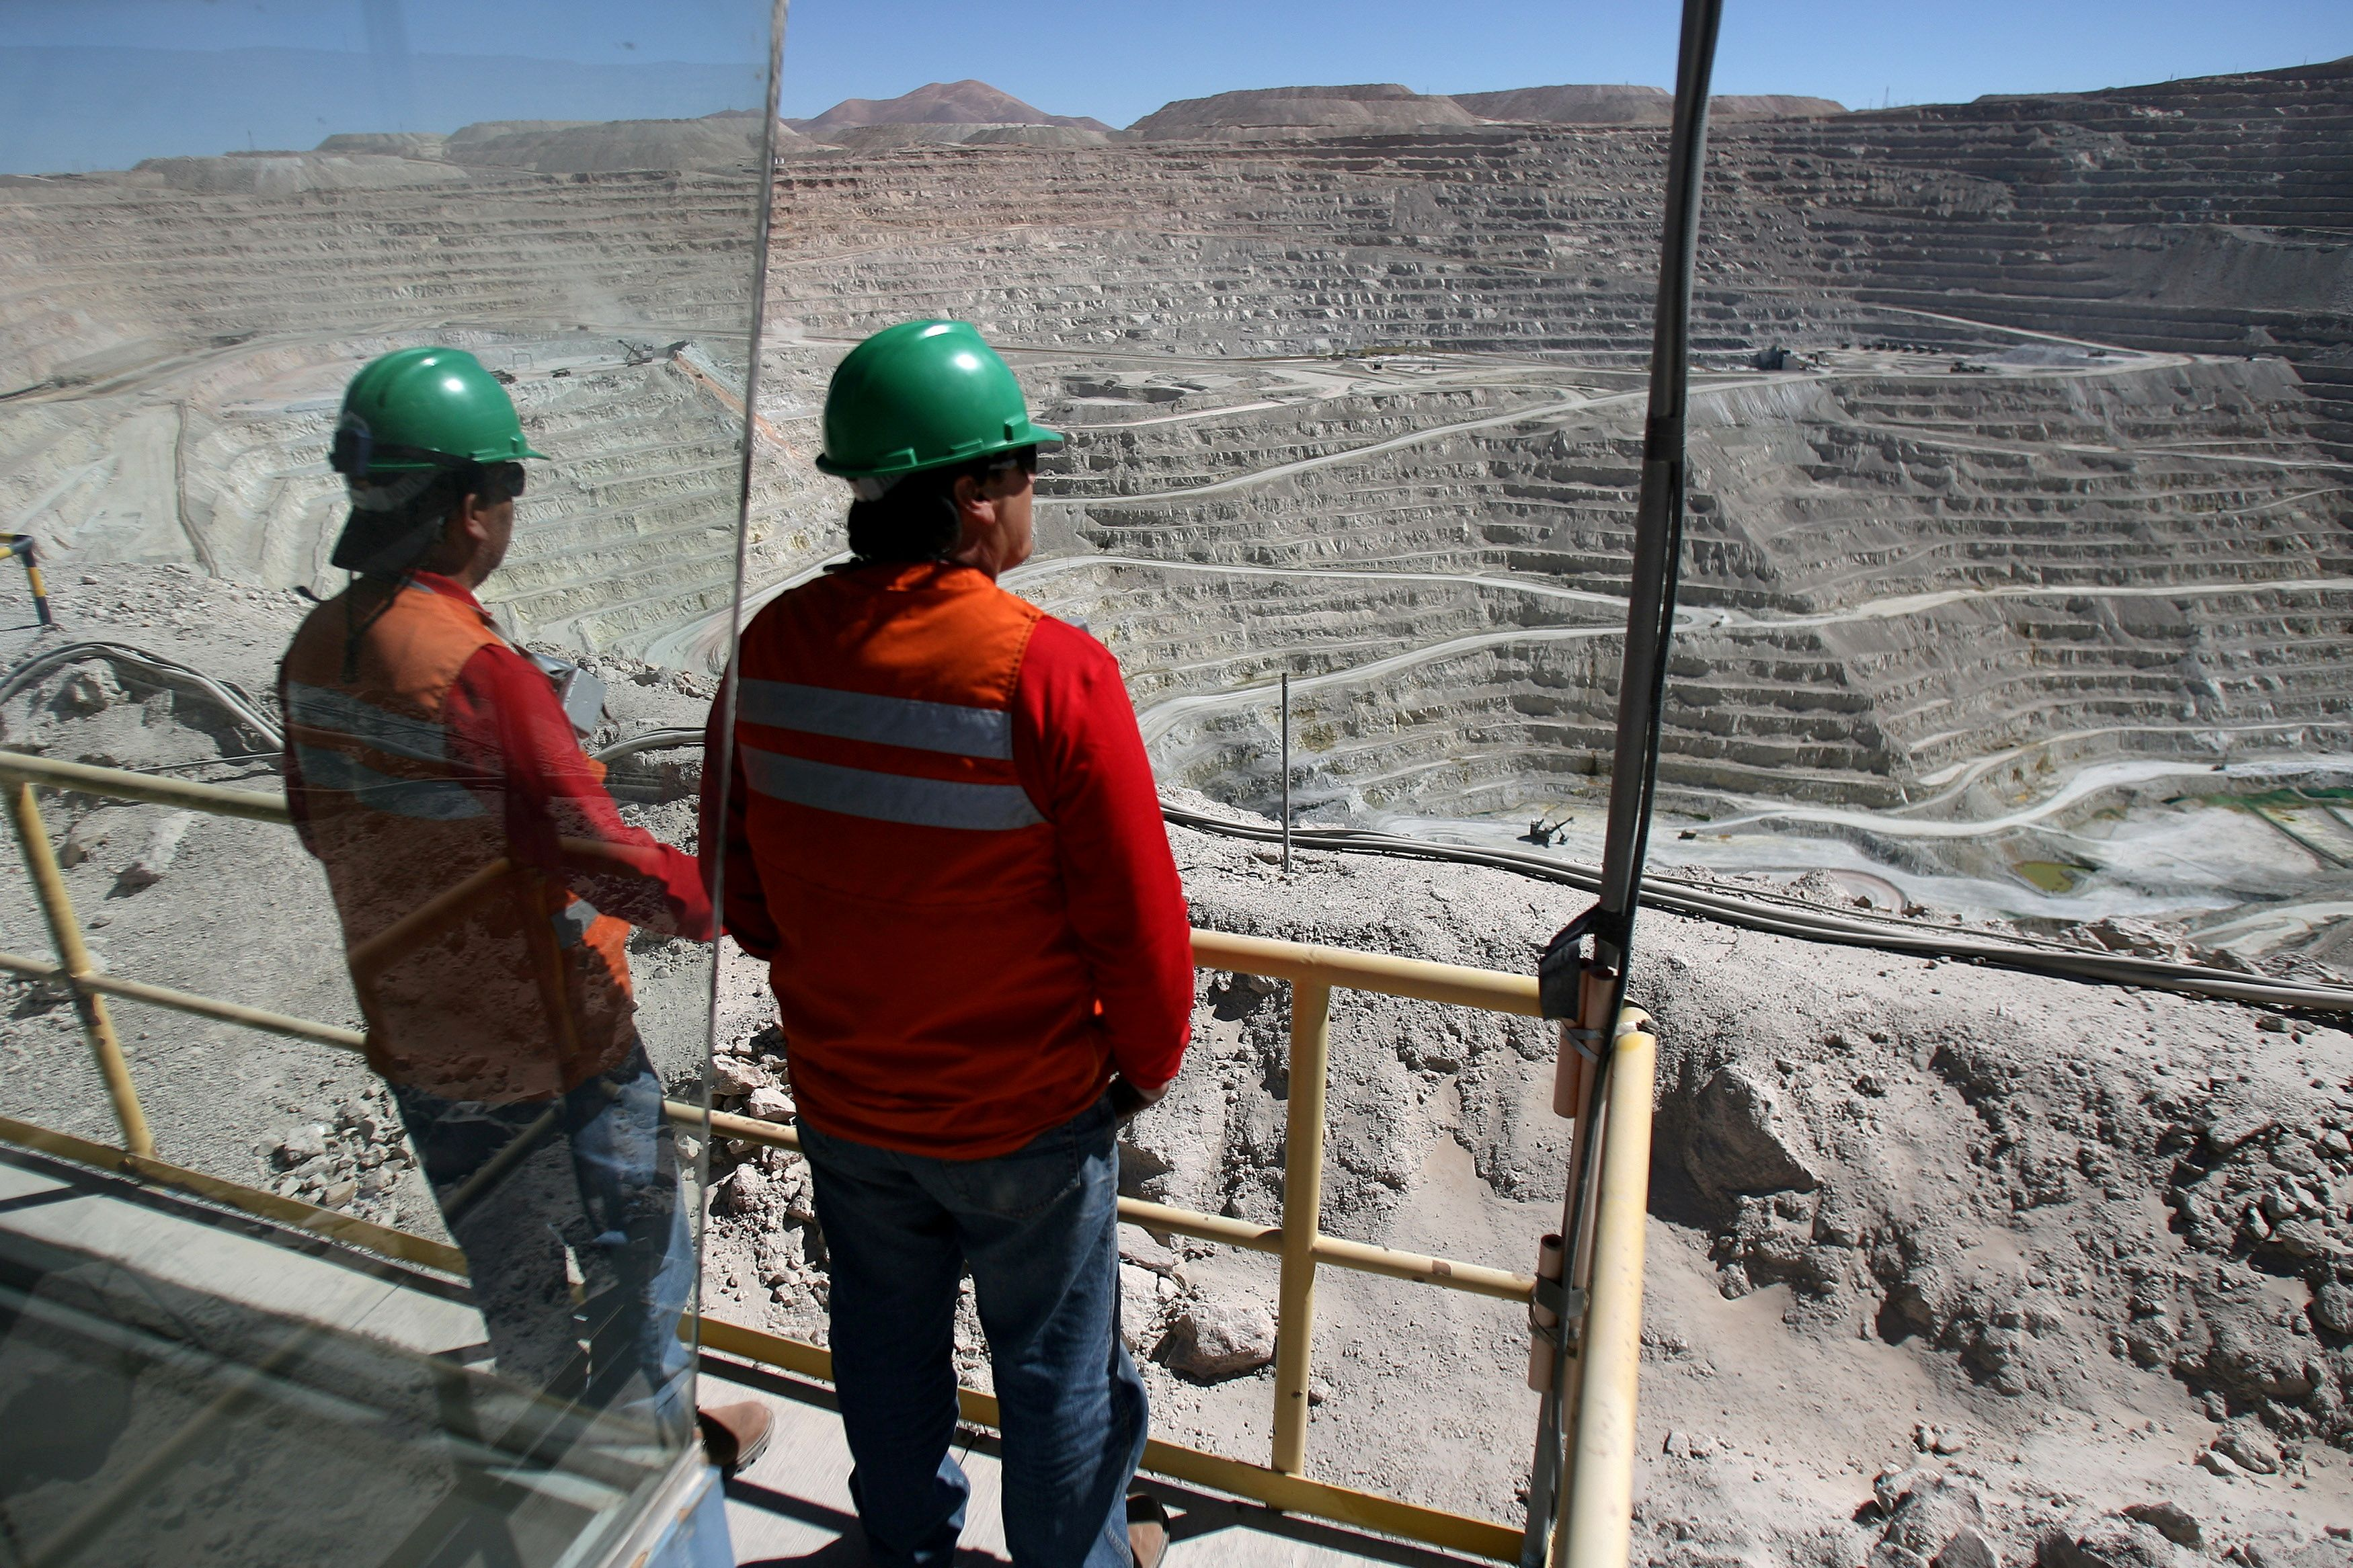 Workers of BHP Billiton's Escondida, the world's biggest copper mine, are seen in front of the open pit, in Antofagasta, northern Chile March 31, 2008. Picture taken March 31, 2008. REUTERS/Ivan Alvarado/File Photo/File Photo